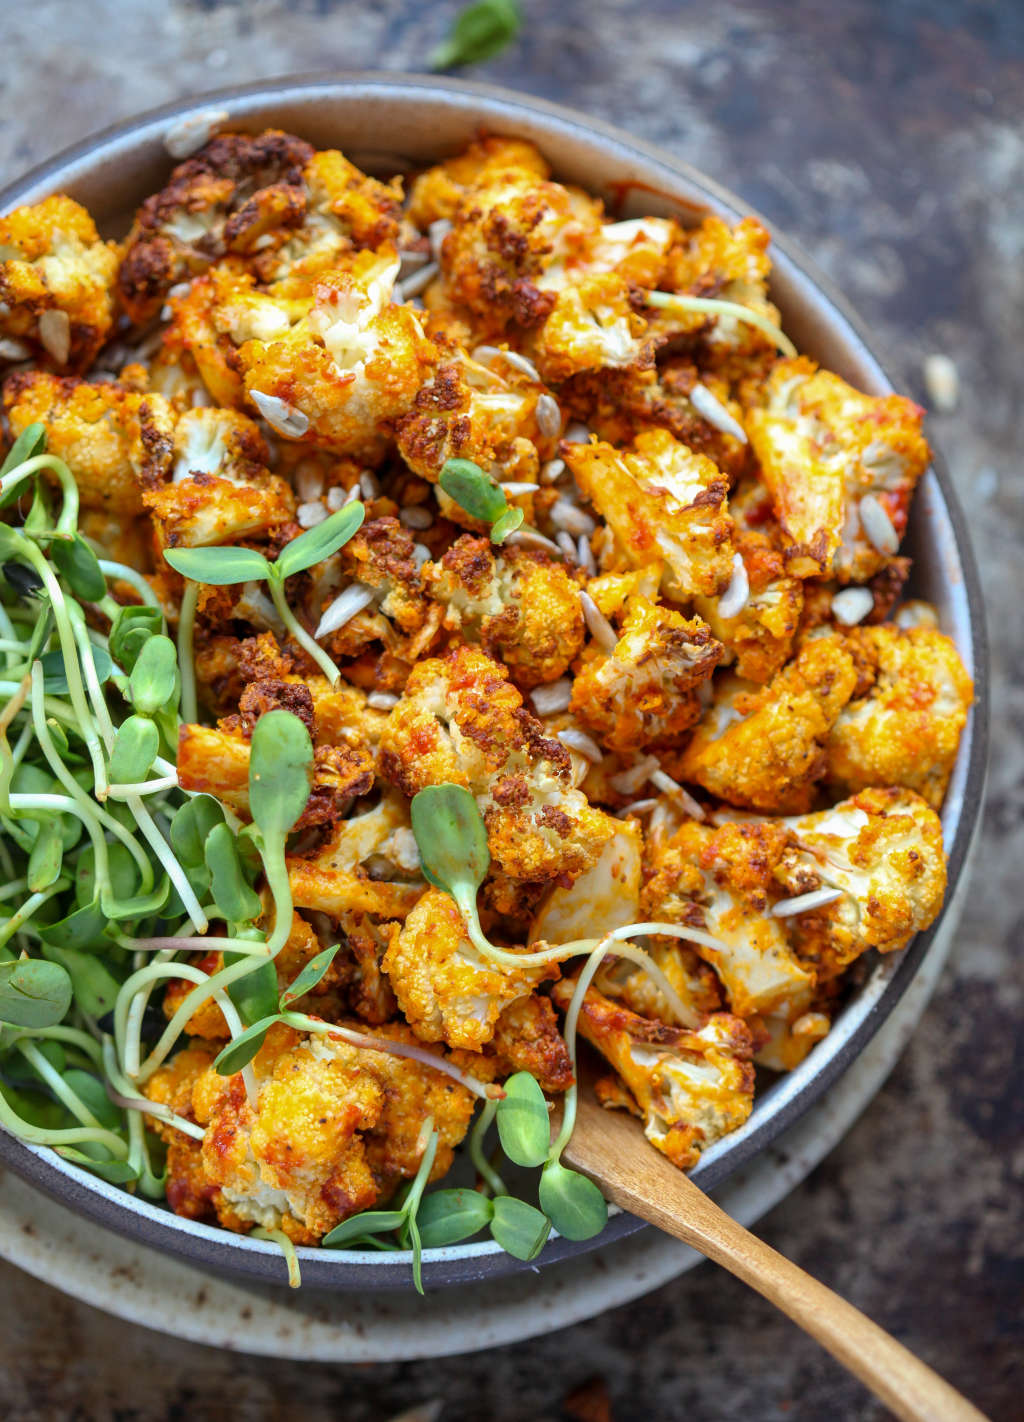 Make This Buffalo Cauliflower in Your Air Fryer This Weekend